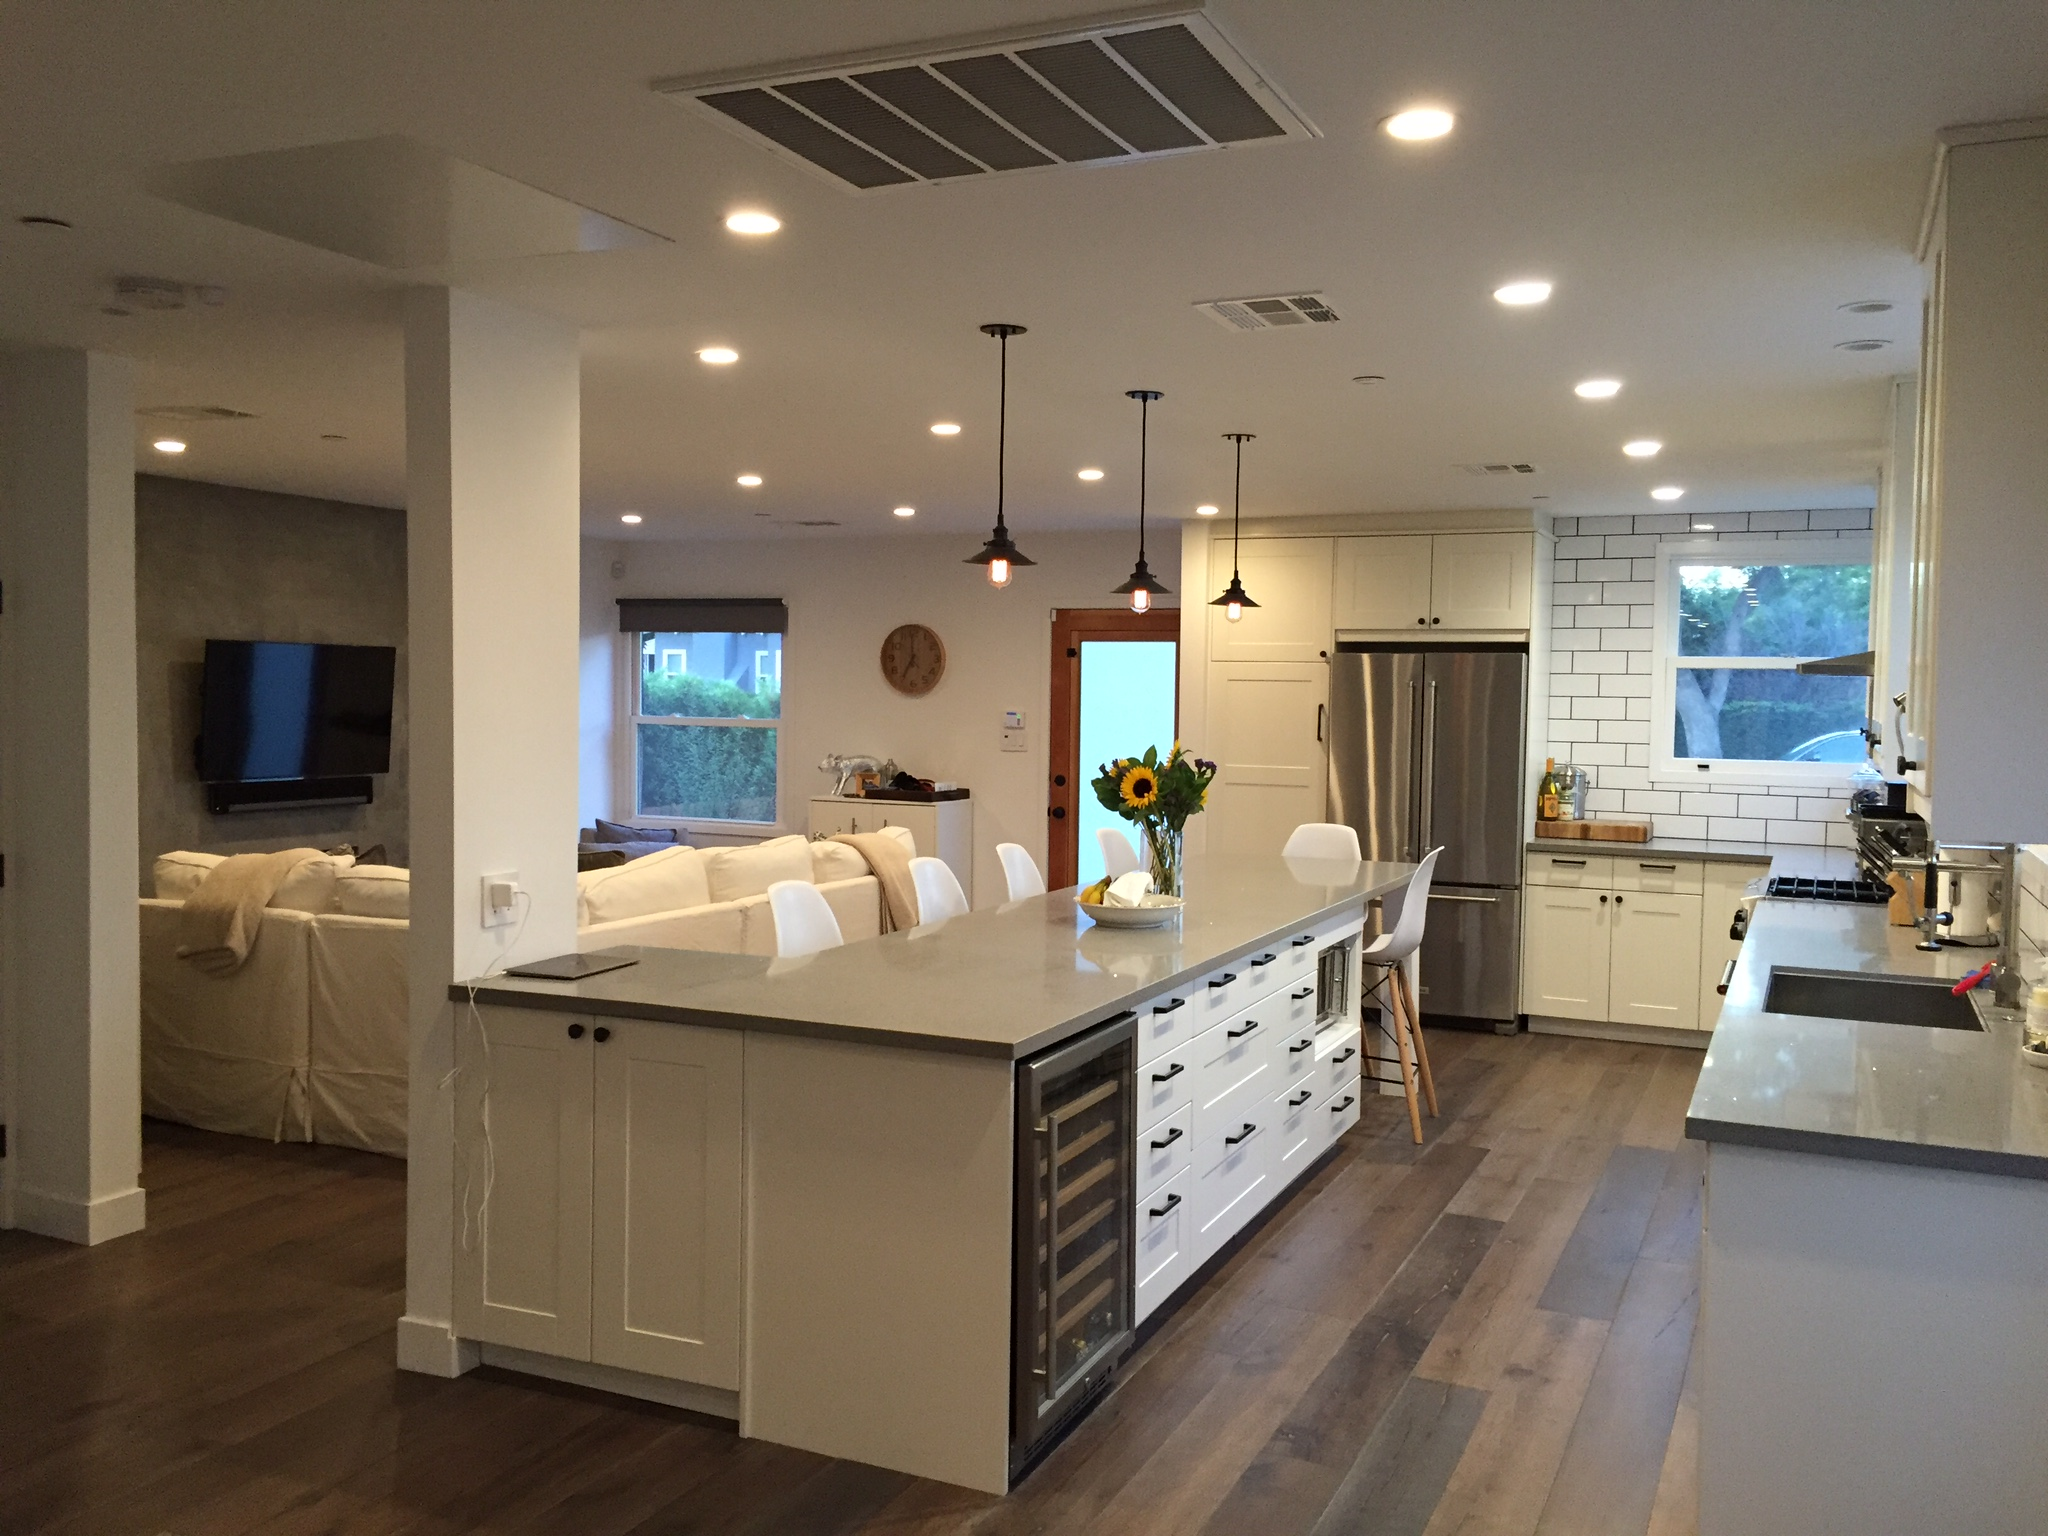 modernkitchenpros kitchen remodel costs 5 Kitchen Remodeling Costs Every Homeowner Needs To Know